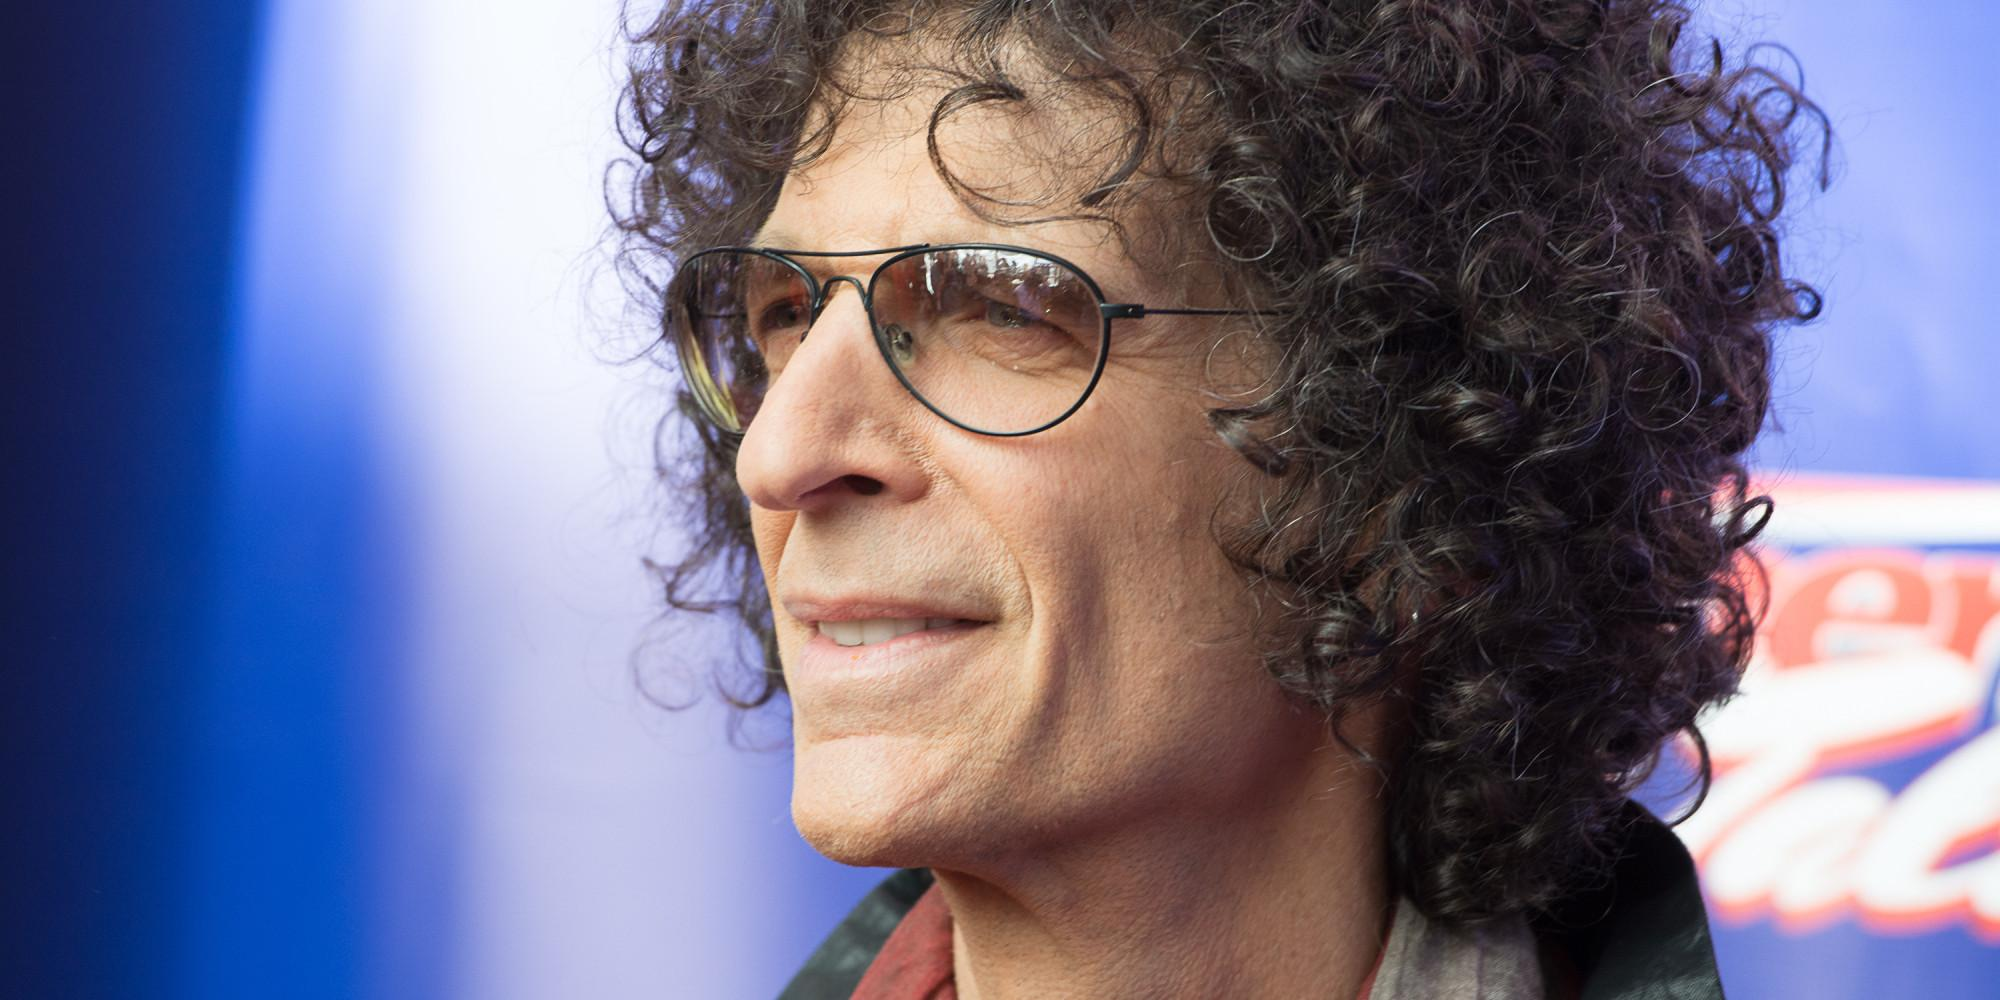 Howard Stern Wallpapers High Quality